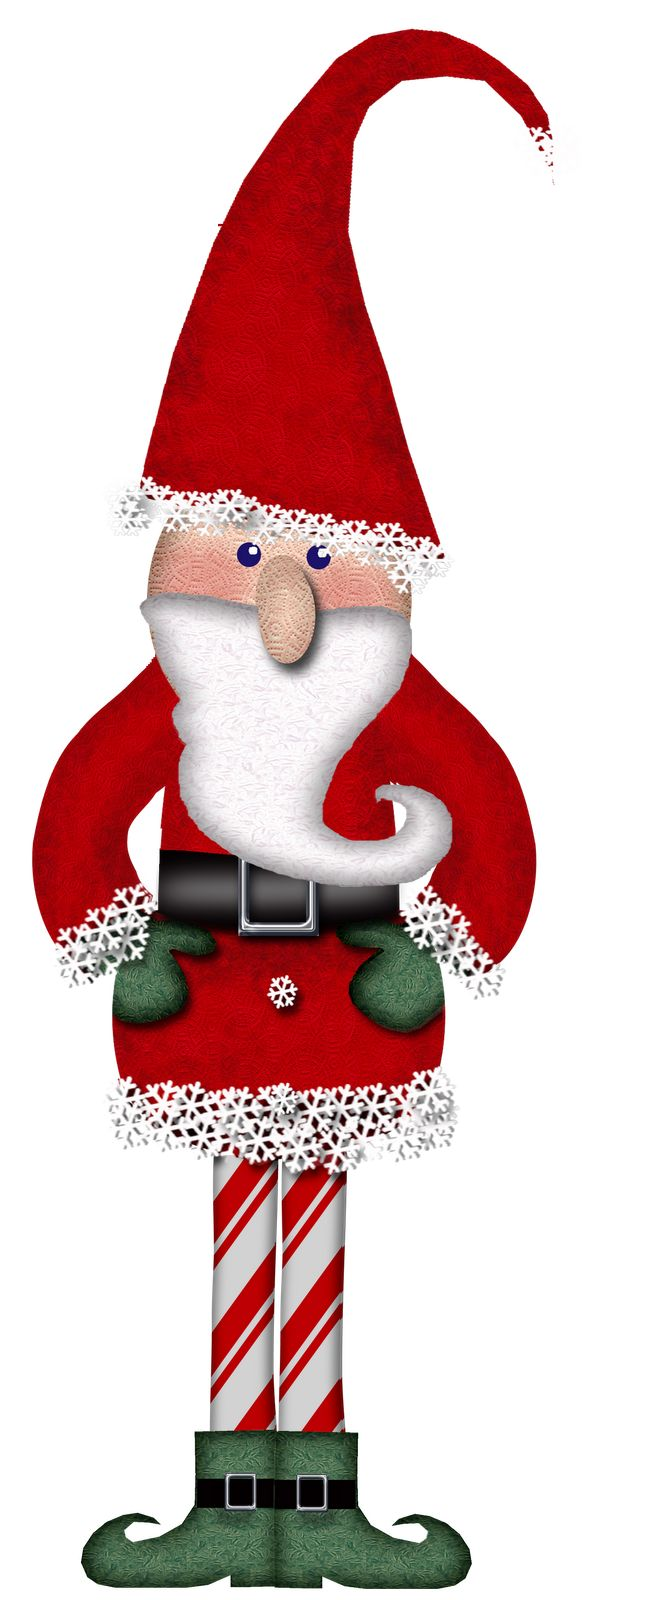 653x1600 New Merry Christmas Clipart Images Free